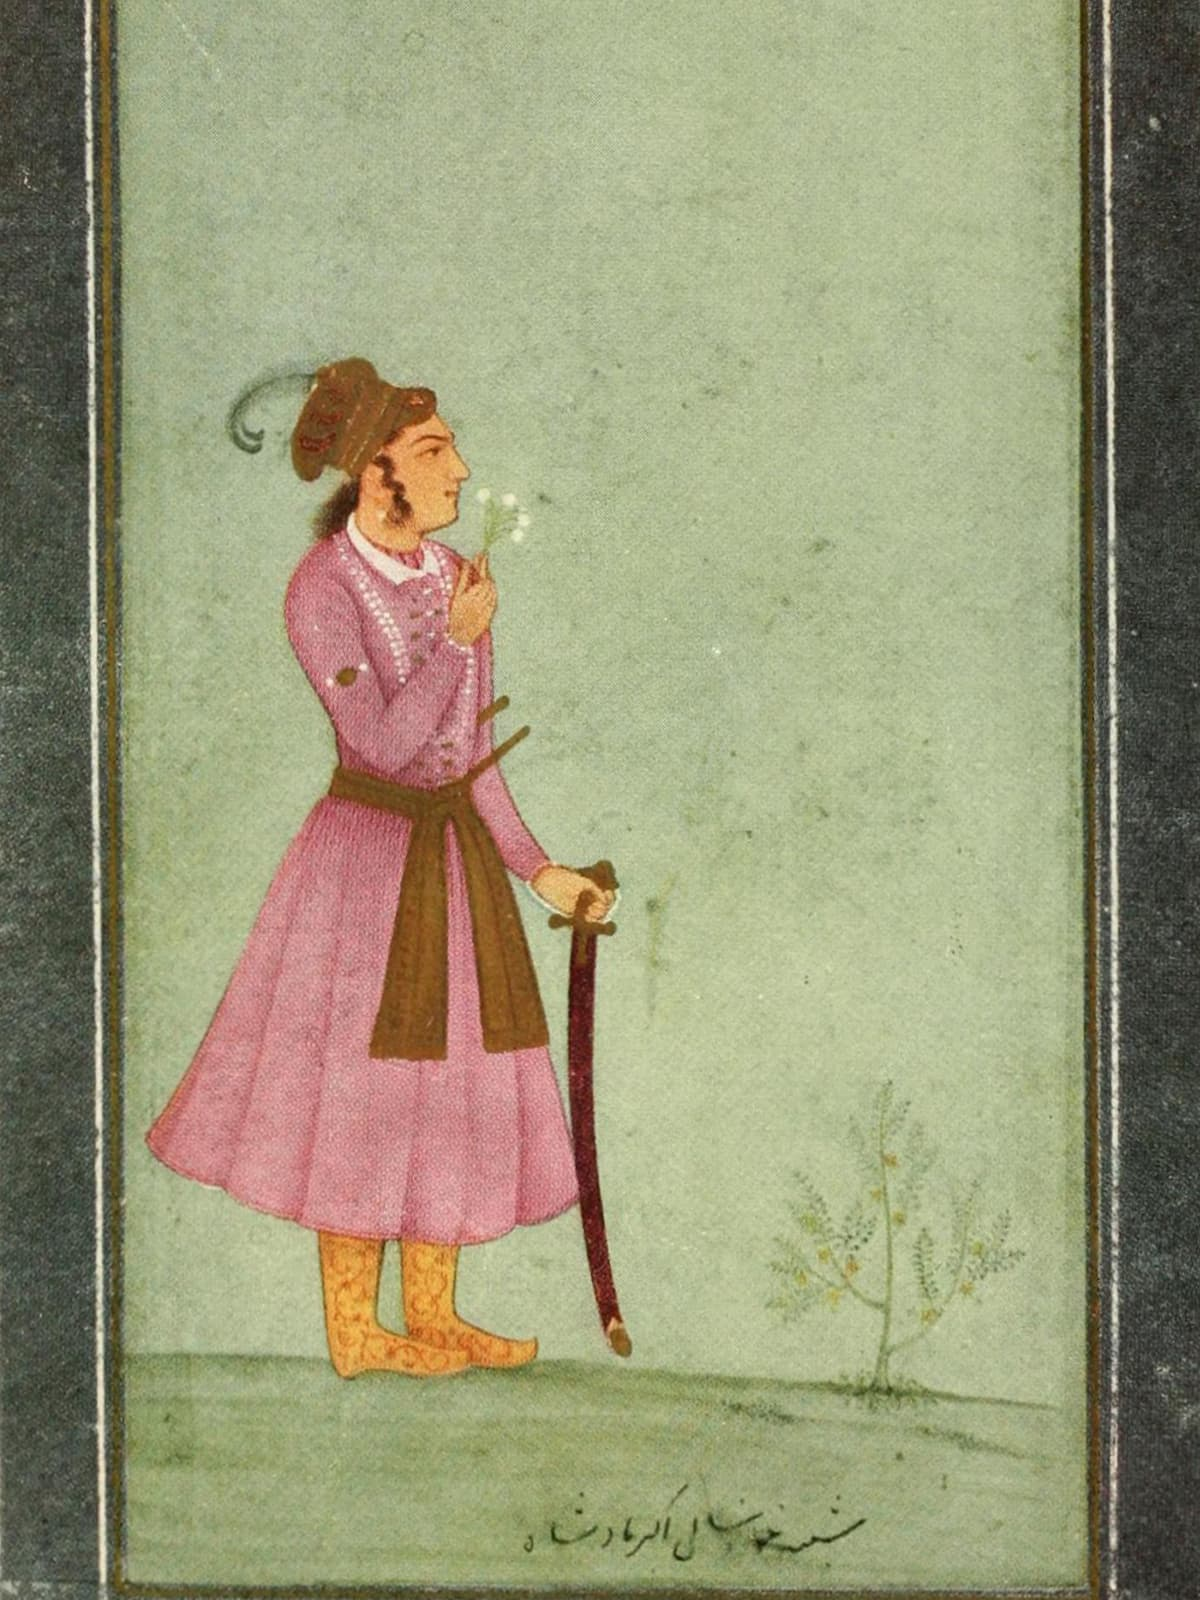 Akbar as a young boy circa 1557